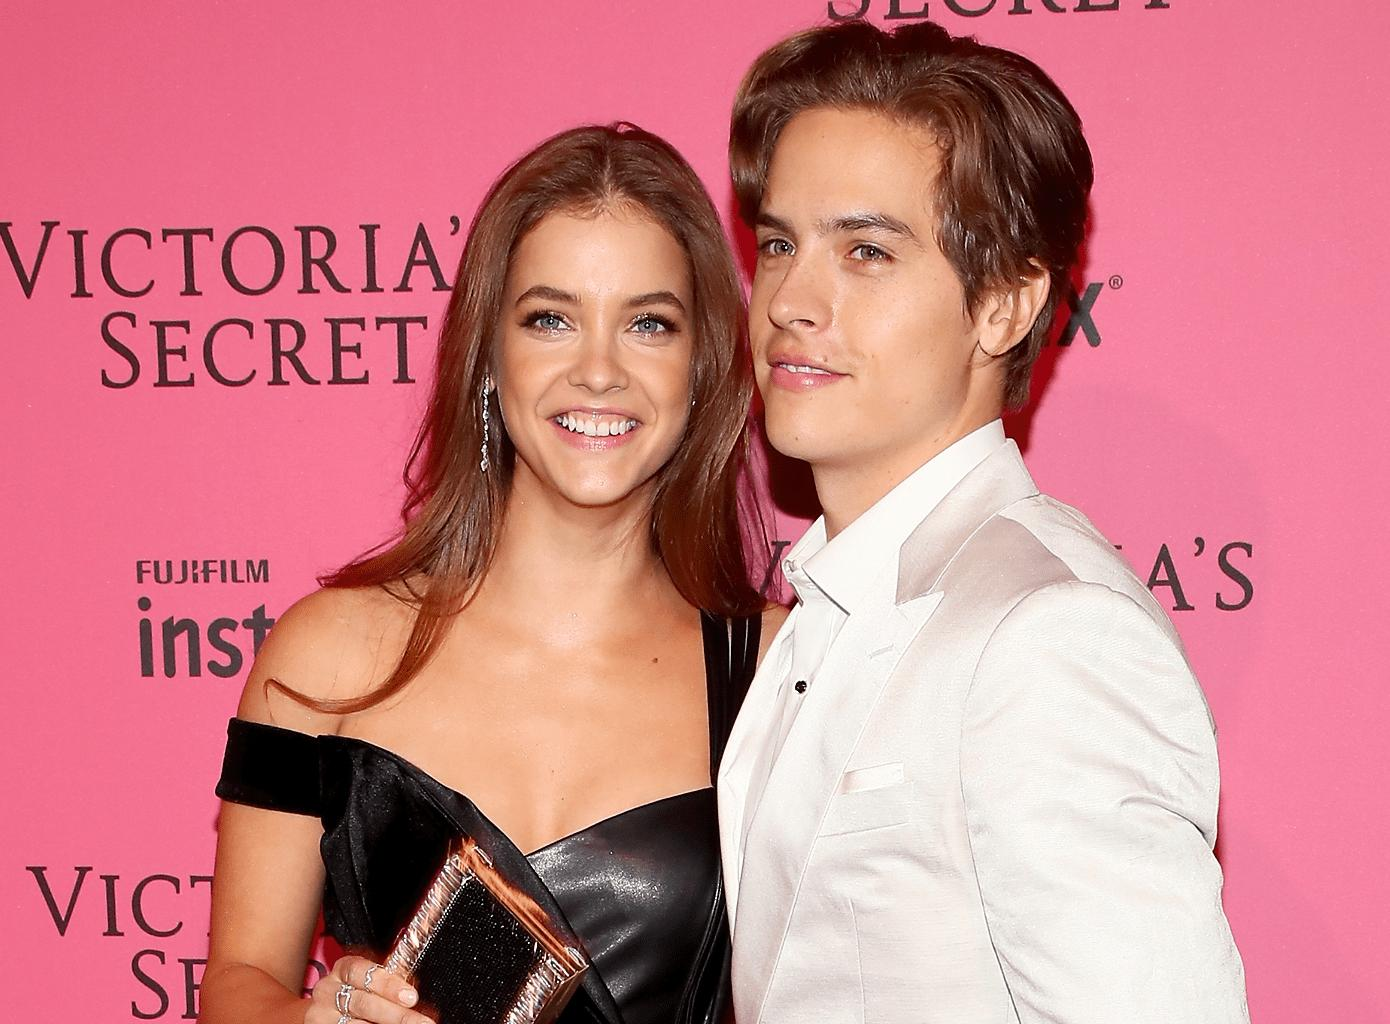 Dylan Sprouse Shaves His Head And Poses With Girlfriend Barbara Palvin In New Snap